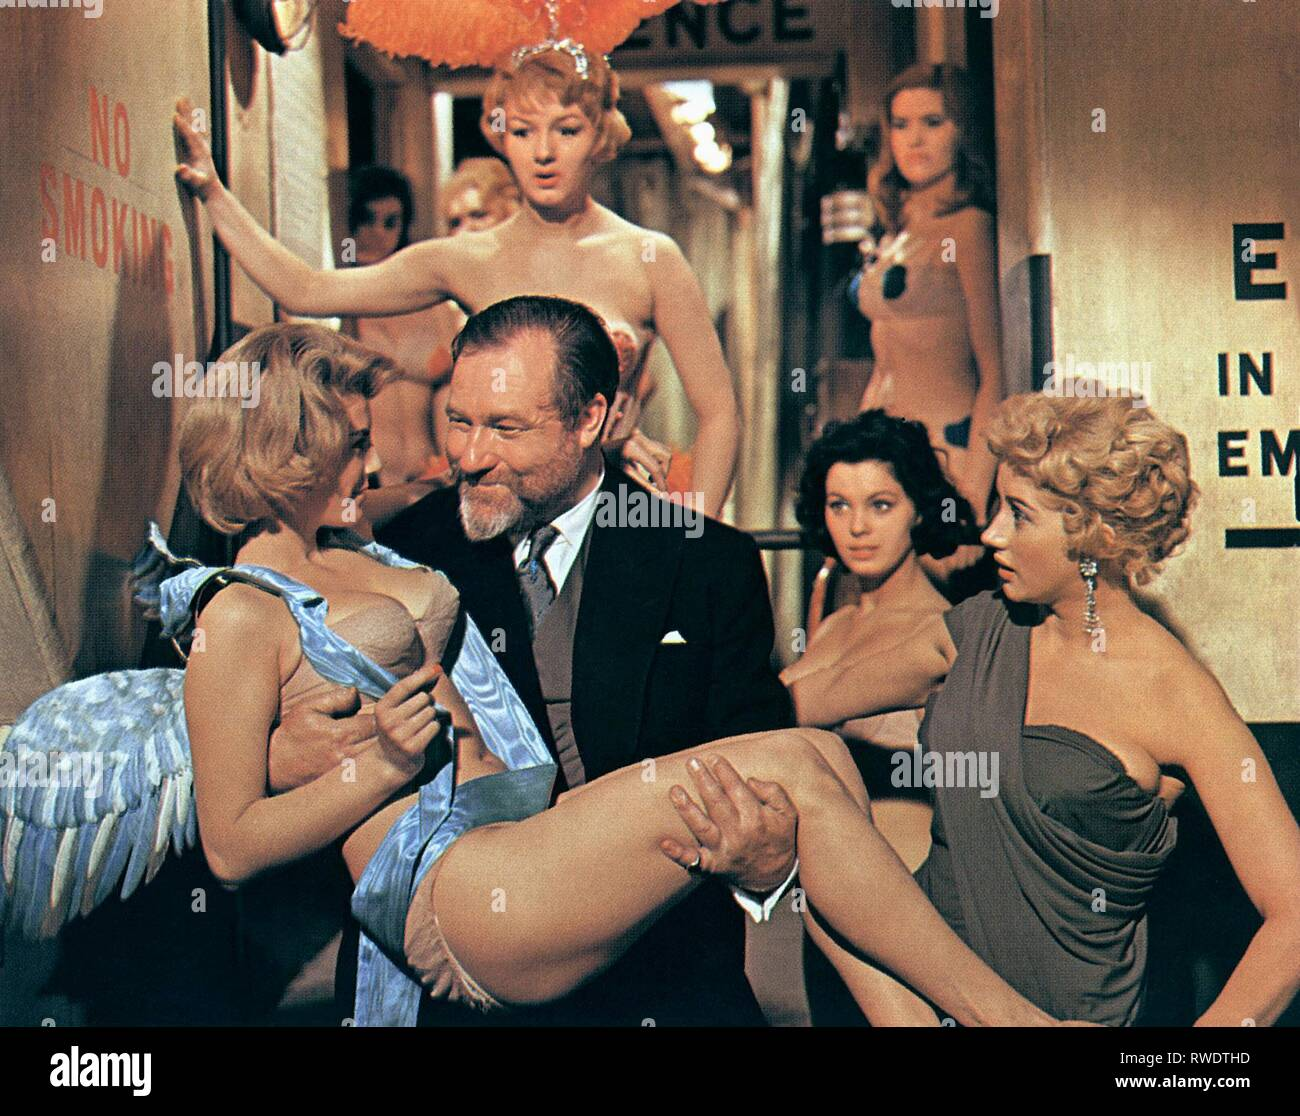 EDEN,BEHIND,RIGHT, DOCTOR IN LOVE, 1960 - Stock Image